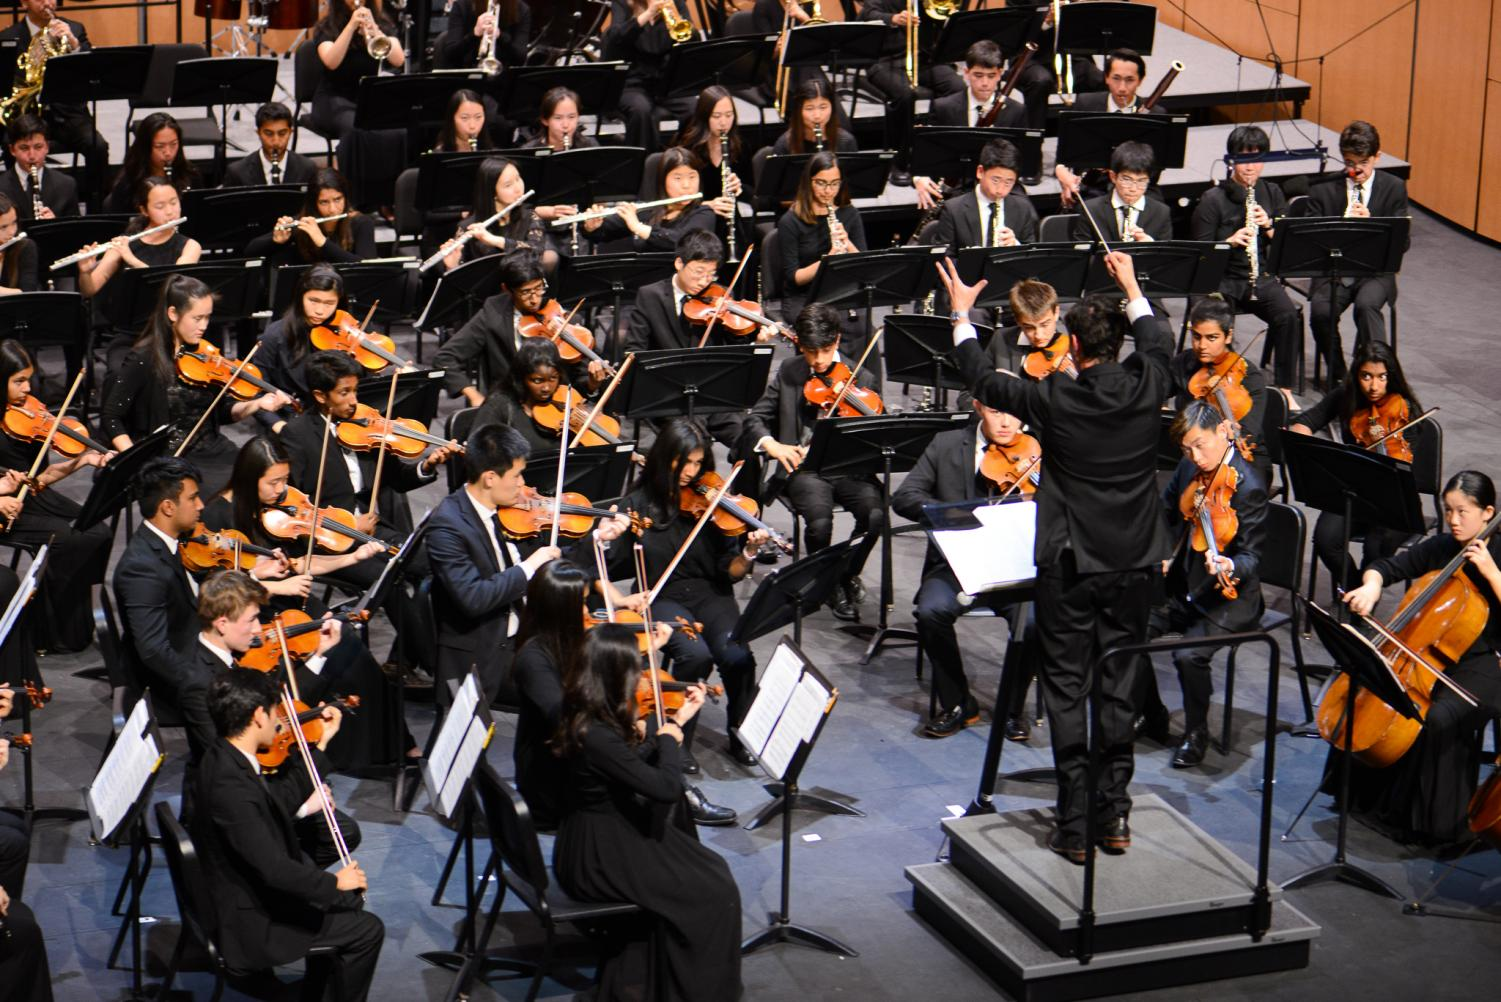 Conductor Dr. David Hart leads the upper school orchestra in a performance of Stravinsky's